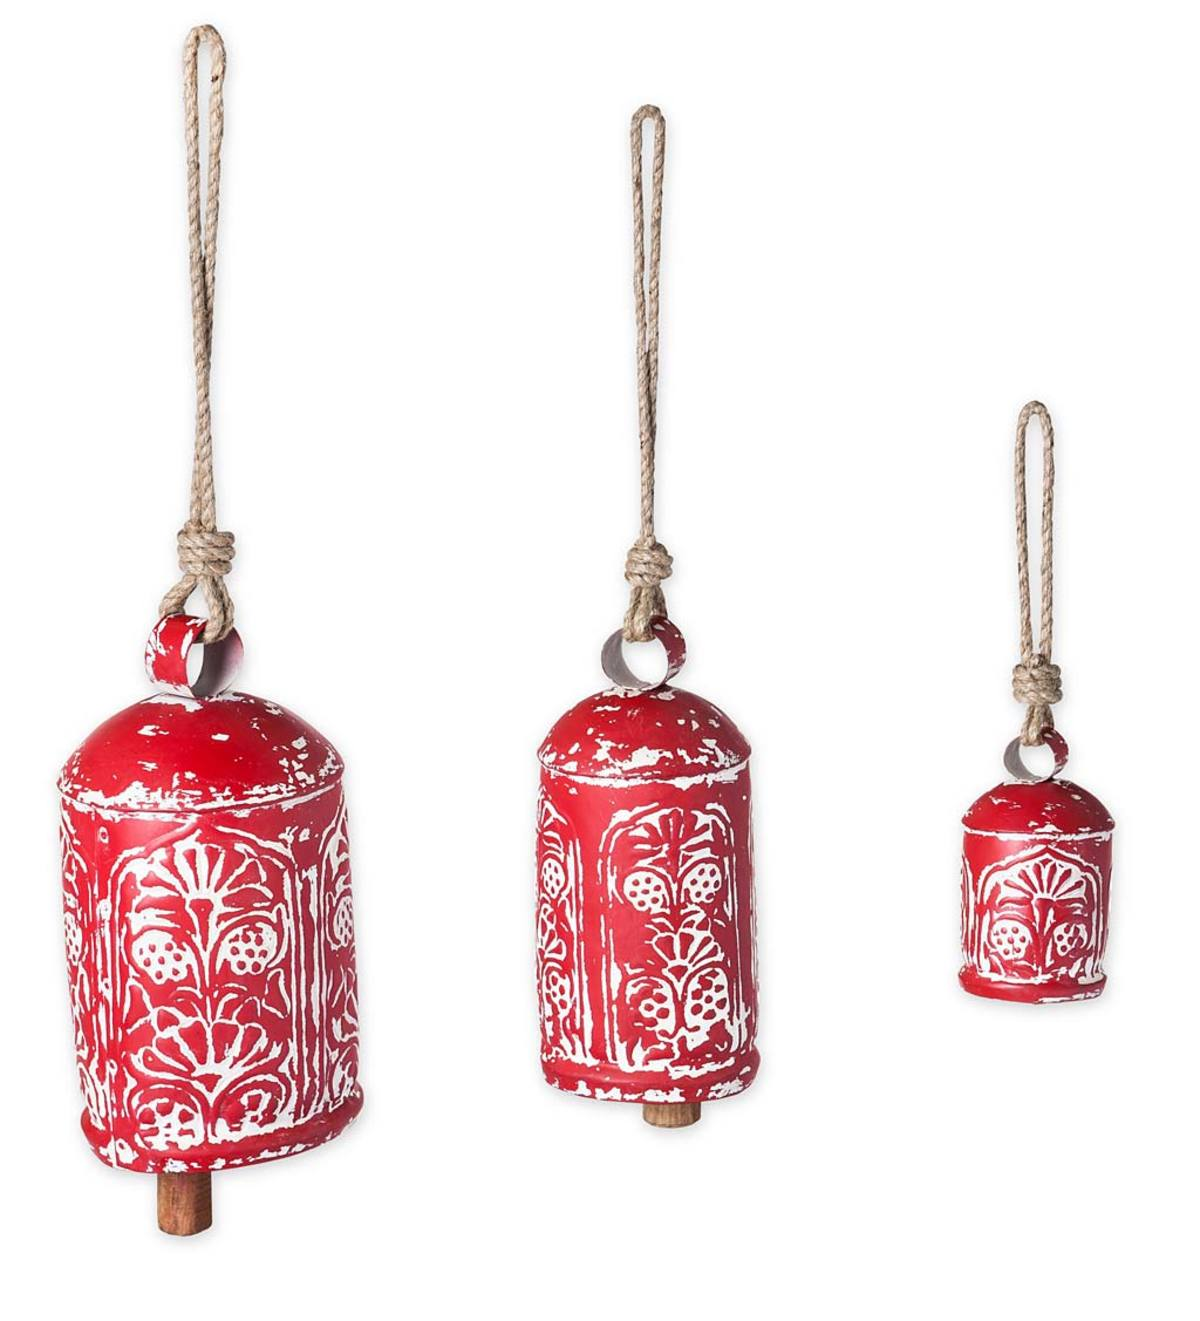 Set of 3 Handcrafted Harmony Bells - Red